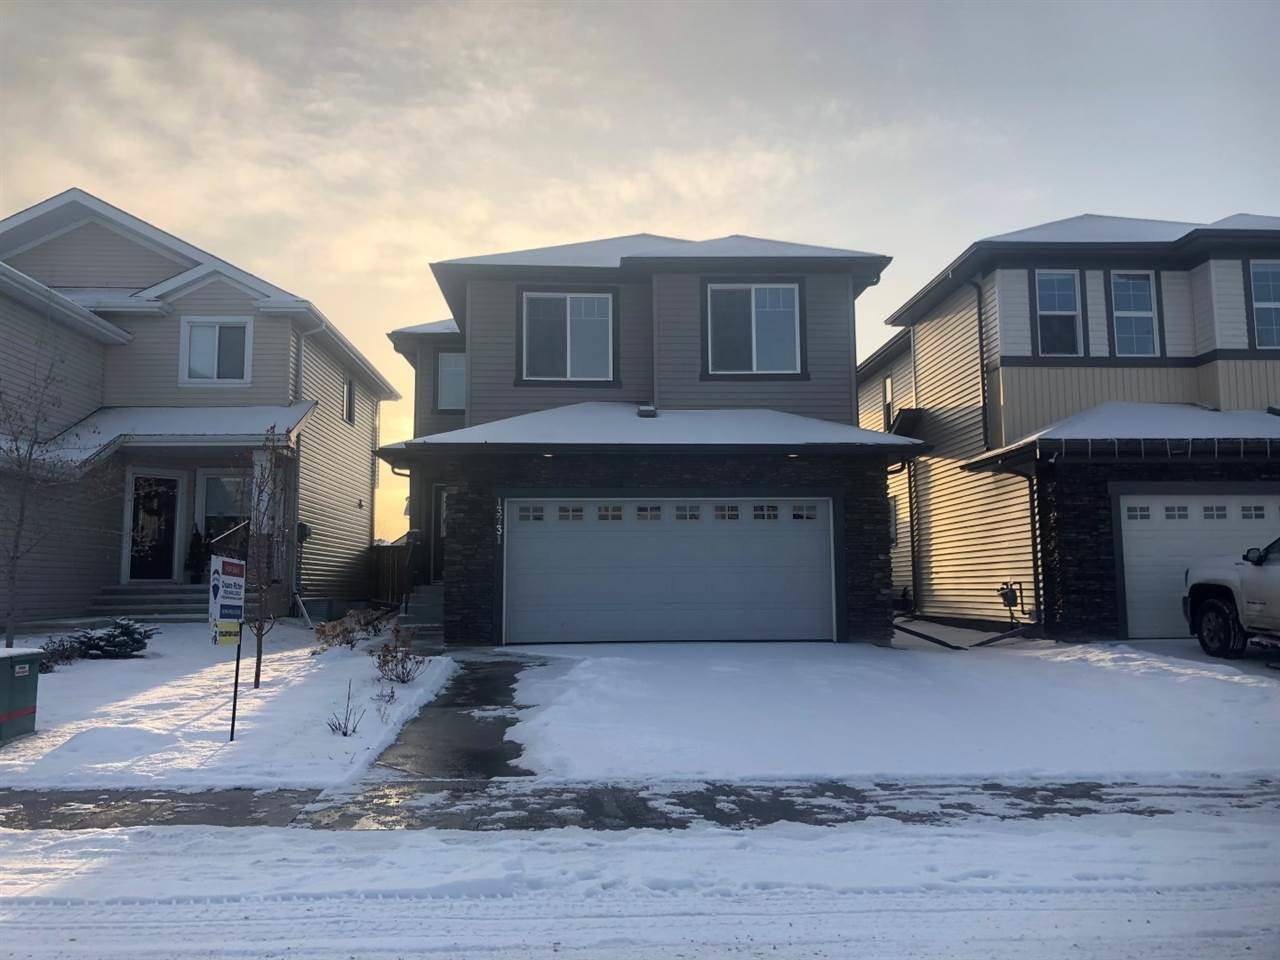 House for sale at 13731 166 Ave Nw Edmonton Alberta - MLS: E4177679